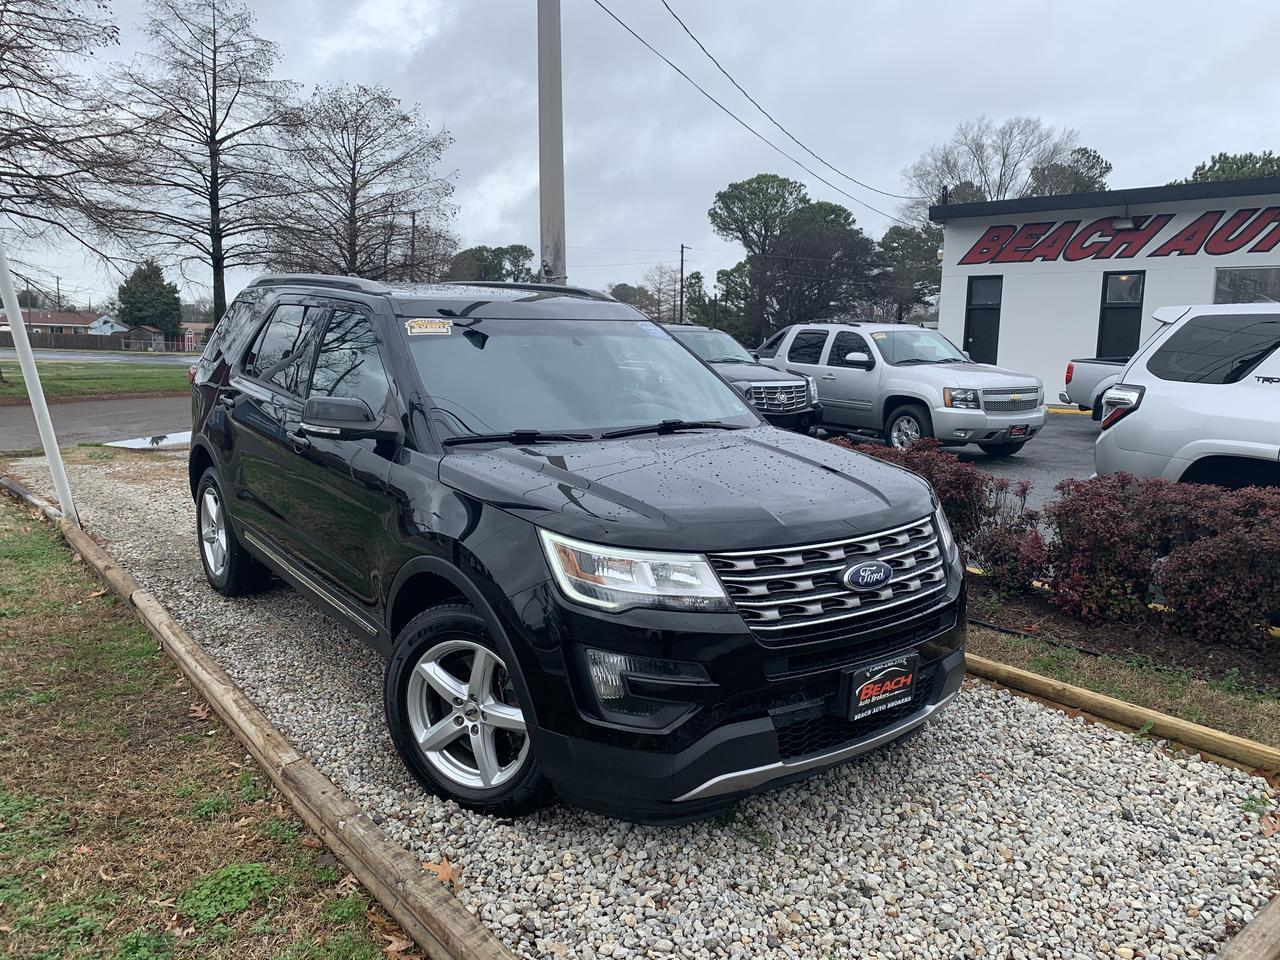 2016 FORD EXPLORER XLT 4X4, WARRANTY, LEATHER, SUNROOF, NAV, 3RD ROW, HEATED SEATS, CAPTAINS CHAIRS, CLEAN CARFAX! Norfolk VA